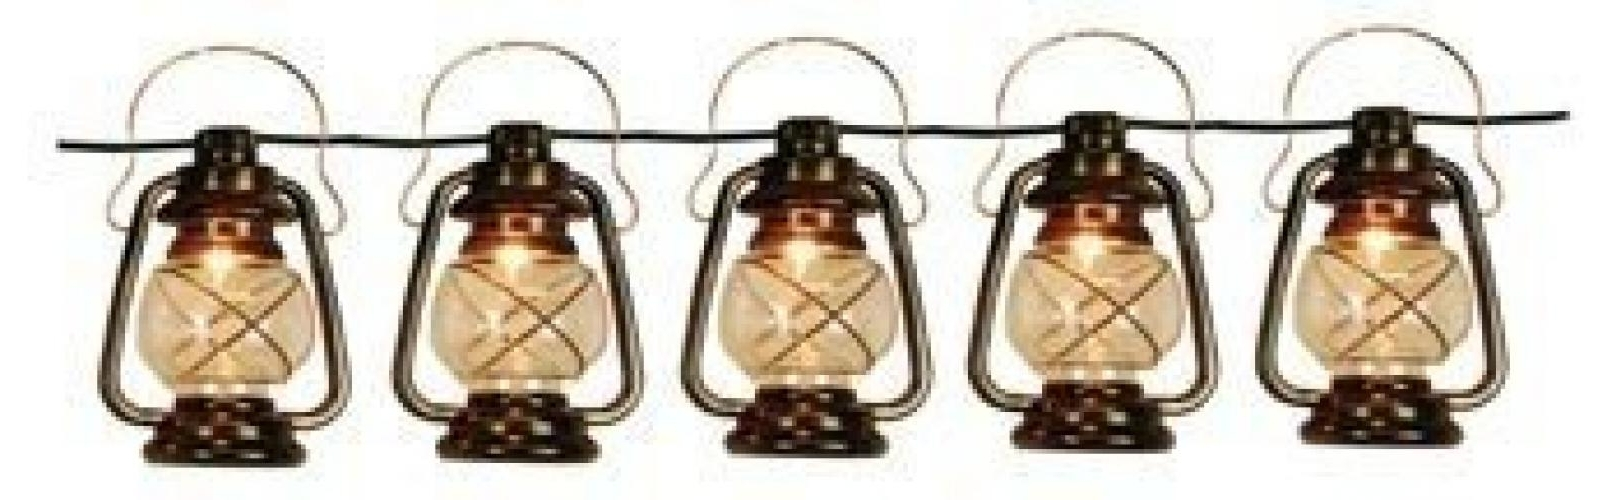 Outdoor Oil Lanterns For Patio For Most Recent Patio String Lights Oil Lantern Style Indoor Outdoor – Walmart (Gallery 12 of 20)